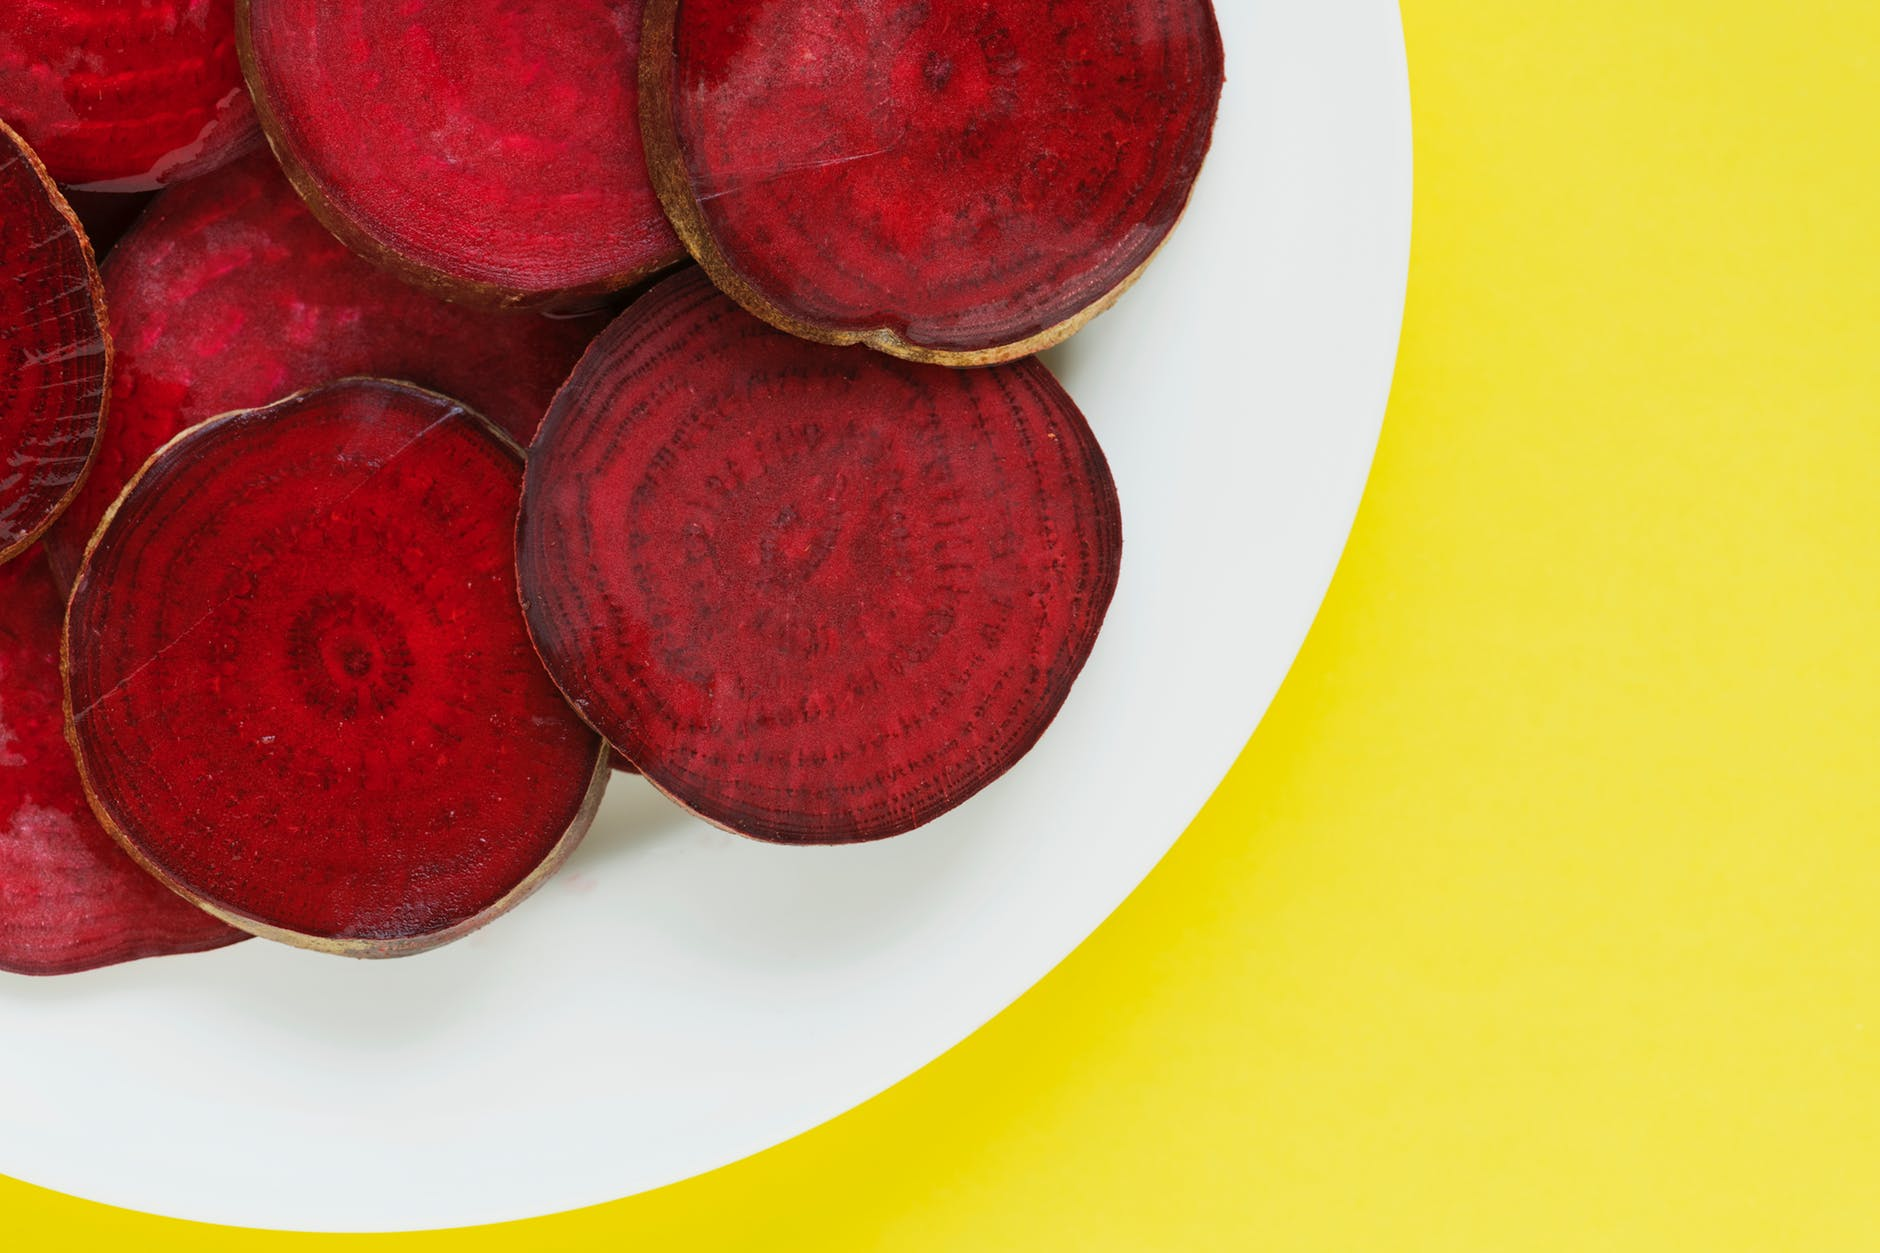 closeup photo of red beets on plate